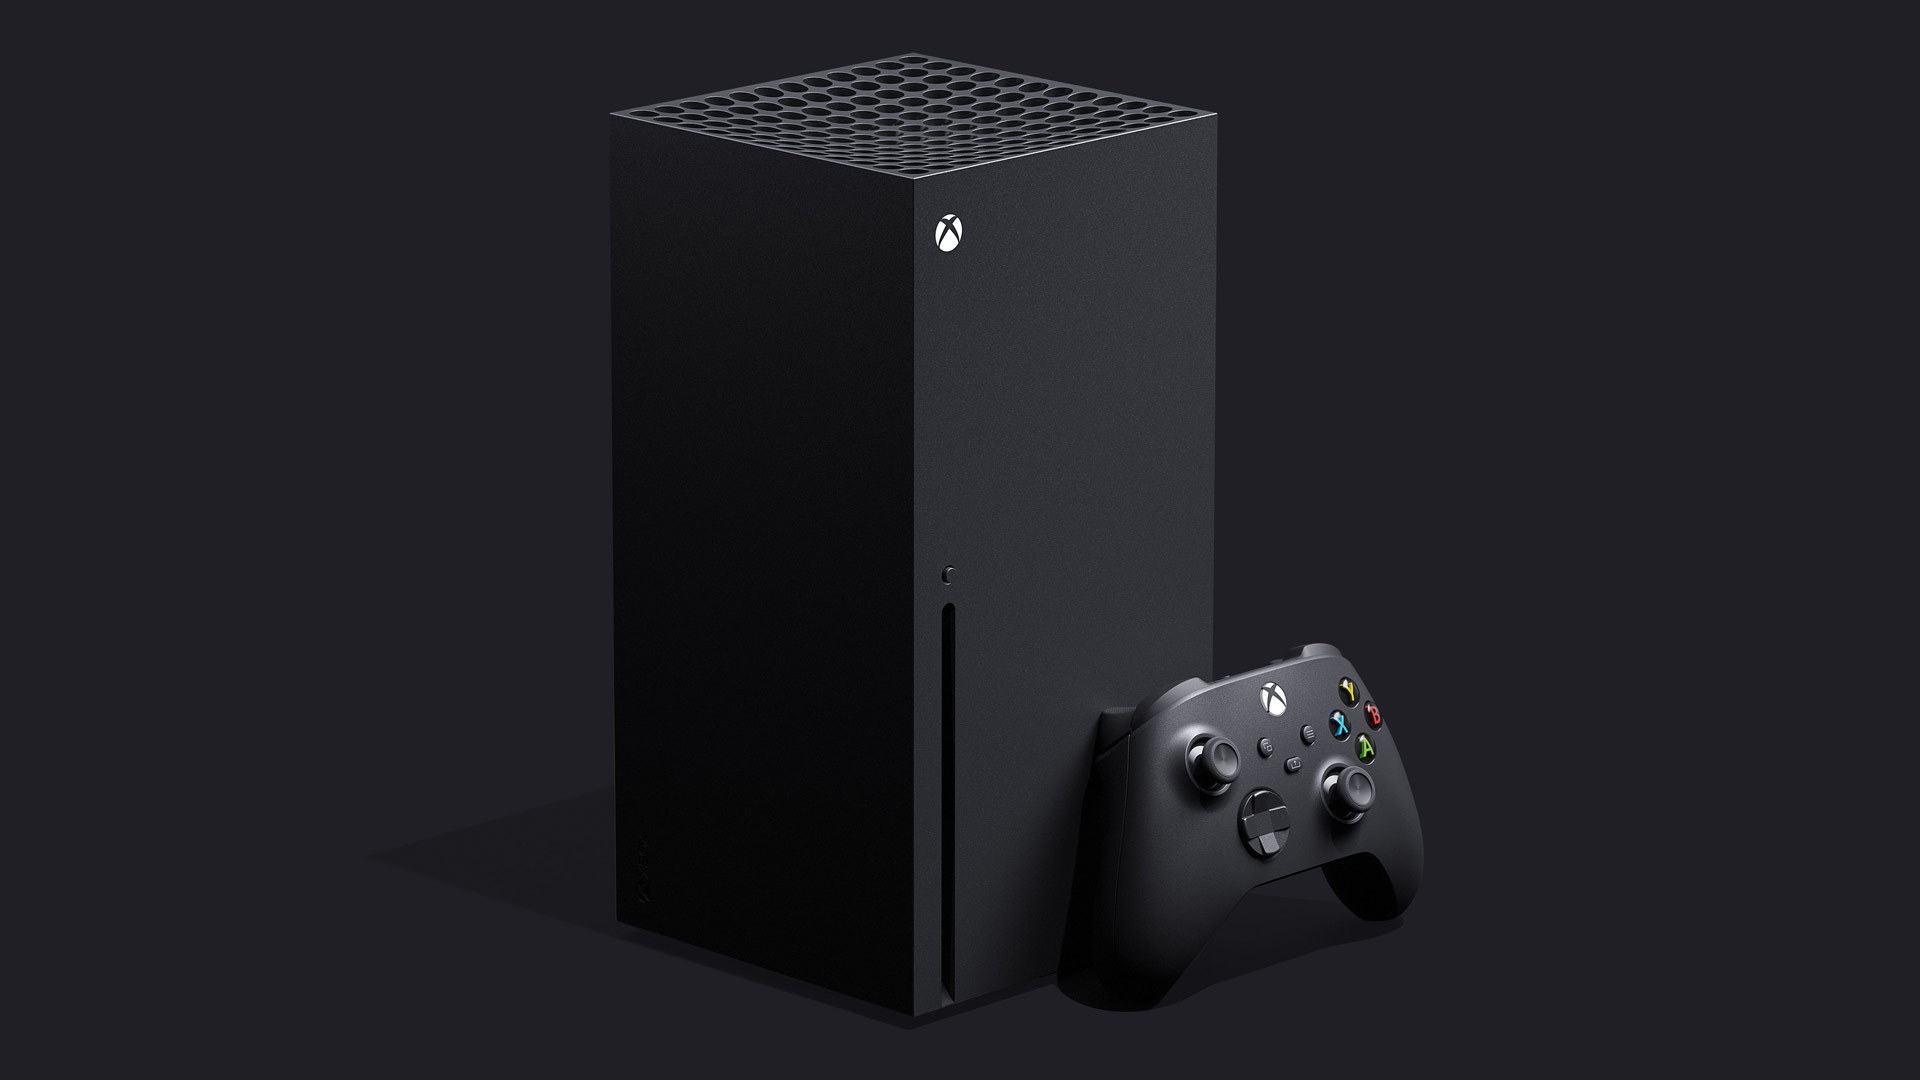 Xbox is done divulging console sales numbers screenshot